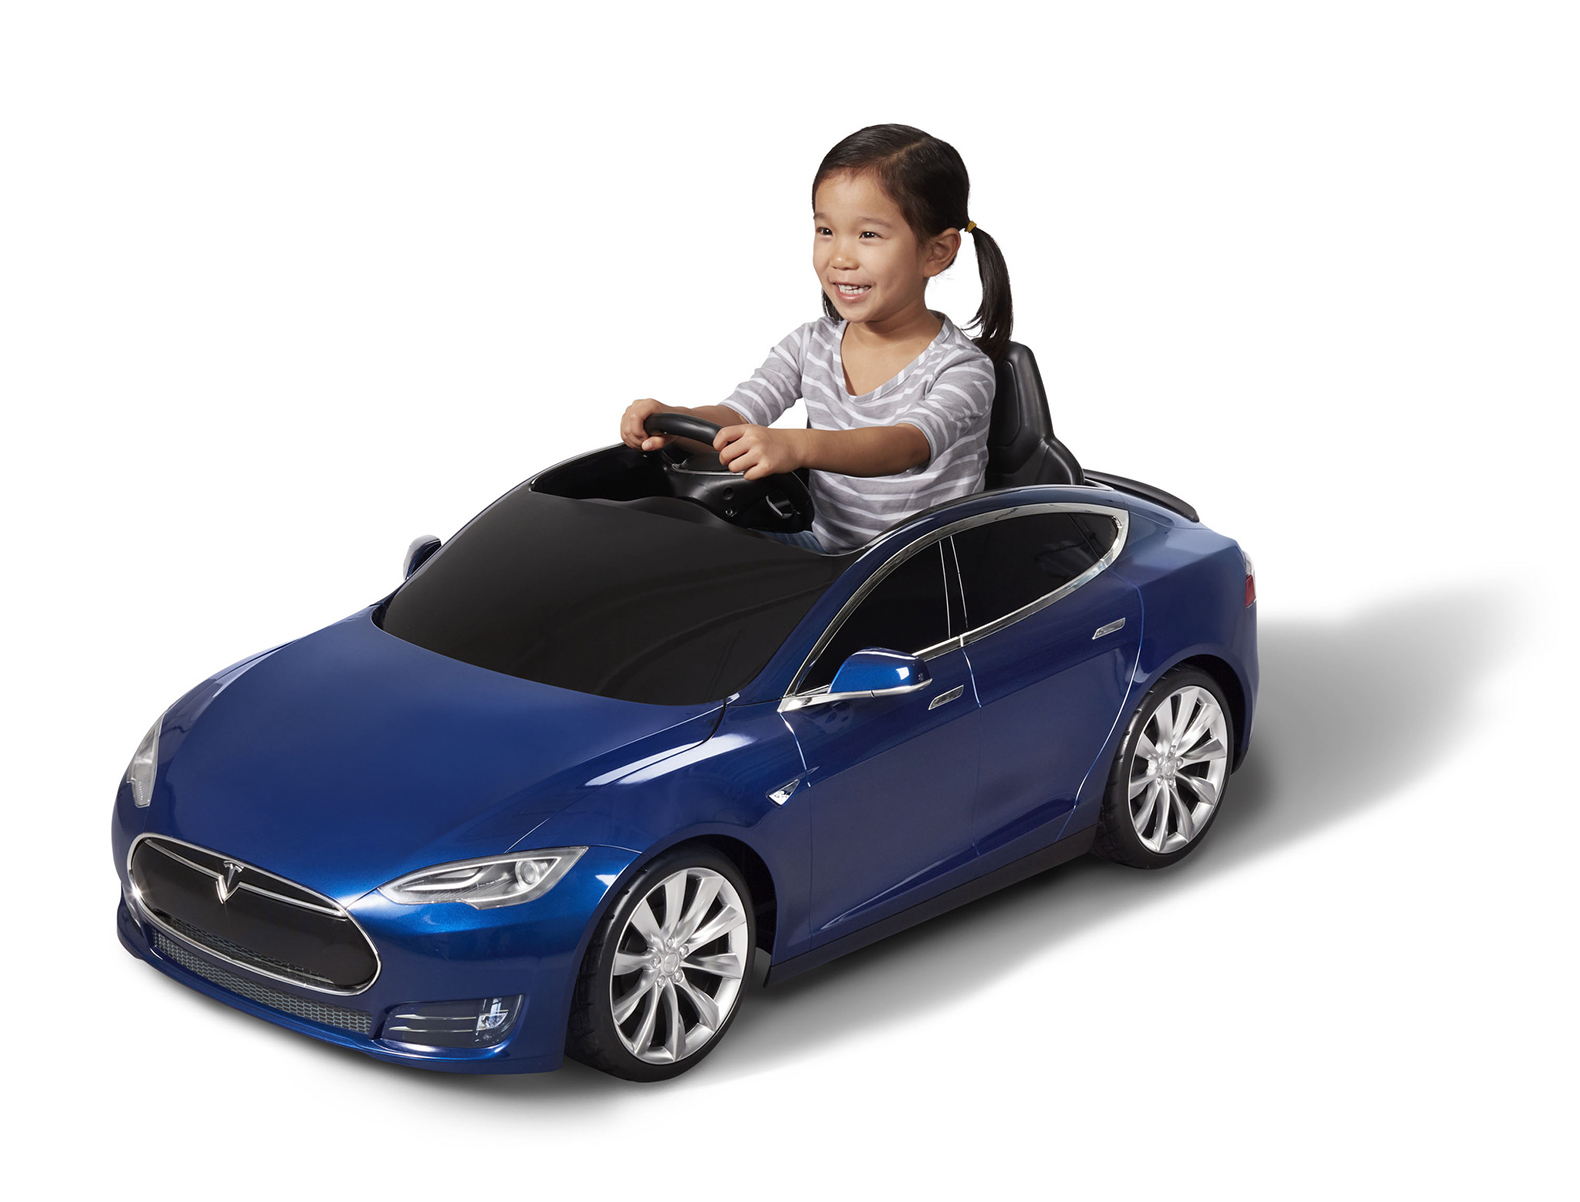 Radio Flyer Introduces 500 Tesla Model S Electric Cars For Kids Complete With The Iconic Logo And Lithium Ion Batteries Master Herald